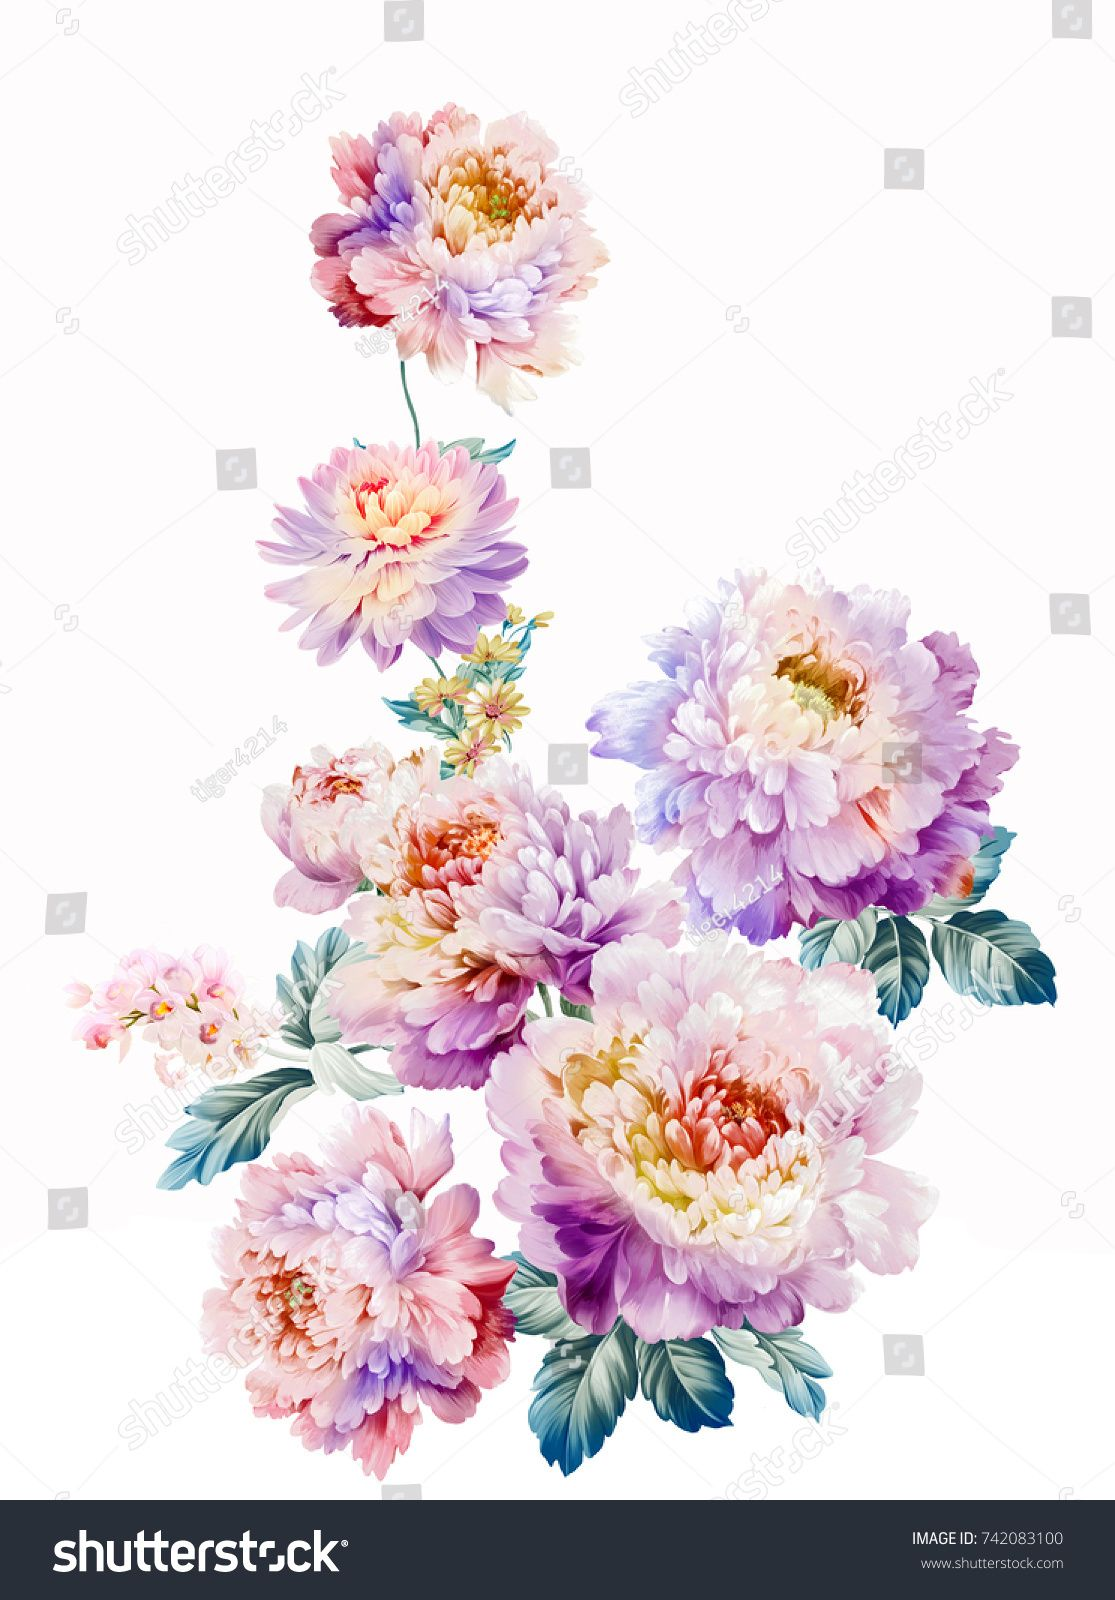 Enthusiasm Is Bold And Unrestrained Of Flowers The Leaves And Flowers Art Designunrestrained Bold Enthusiasm Flowers Flower Art Leaf Flowers Flowers